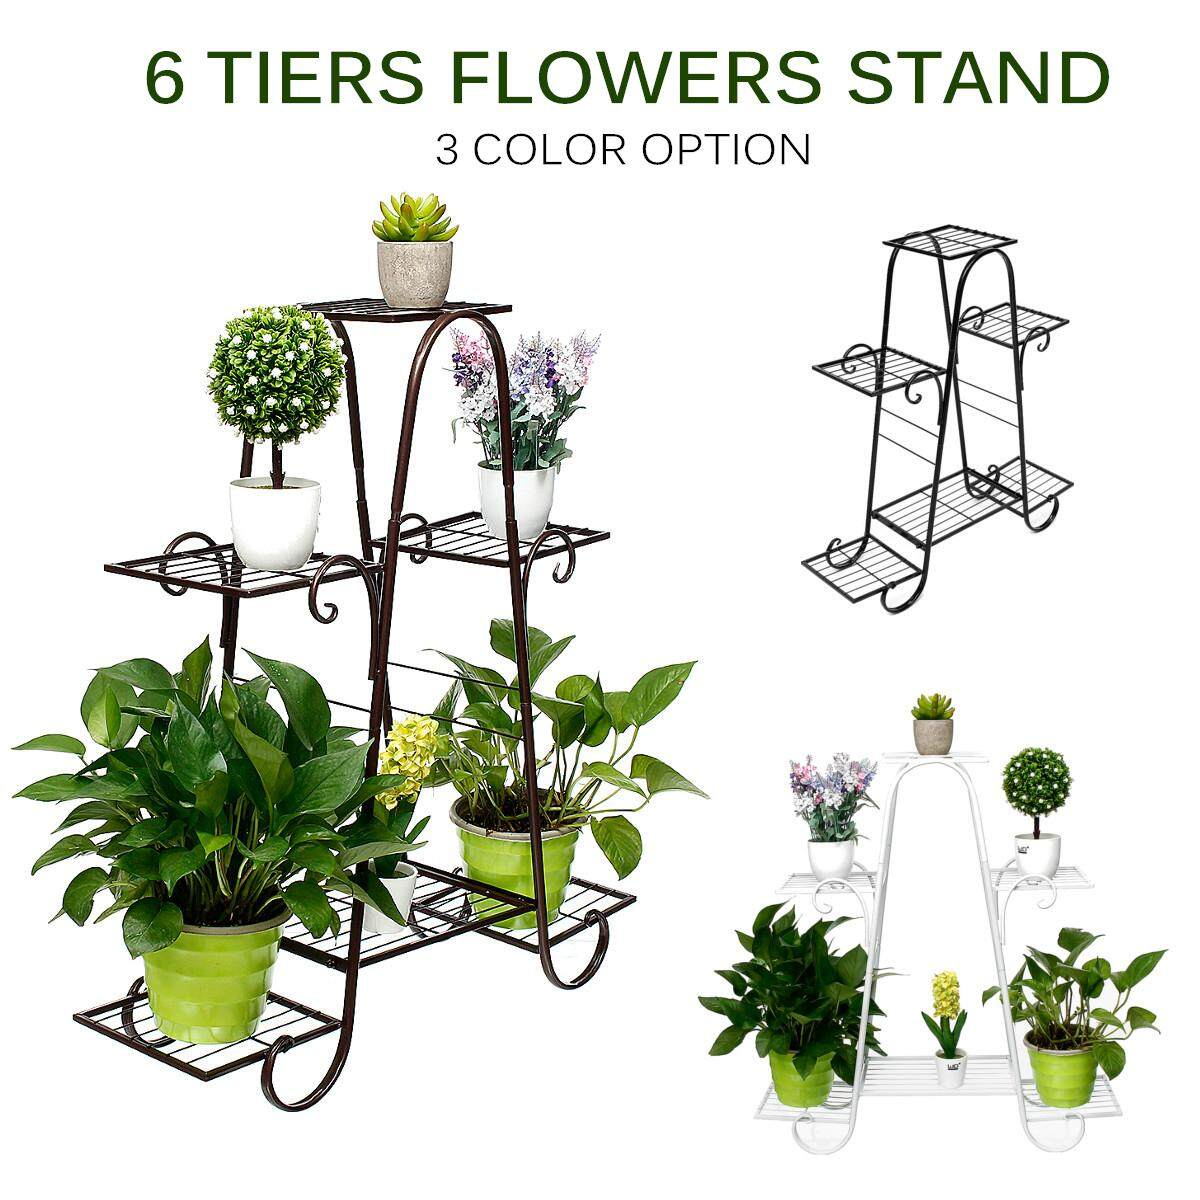 6 Layers Retro Iron Flower Stand Pot Plant Display Shelves Home Garden Decor